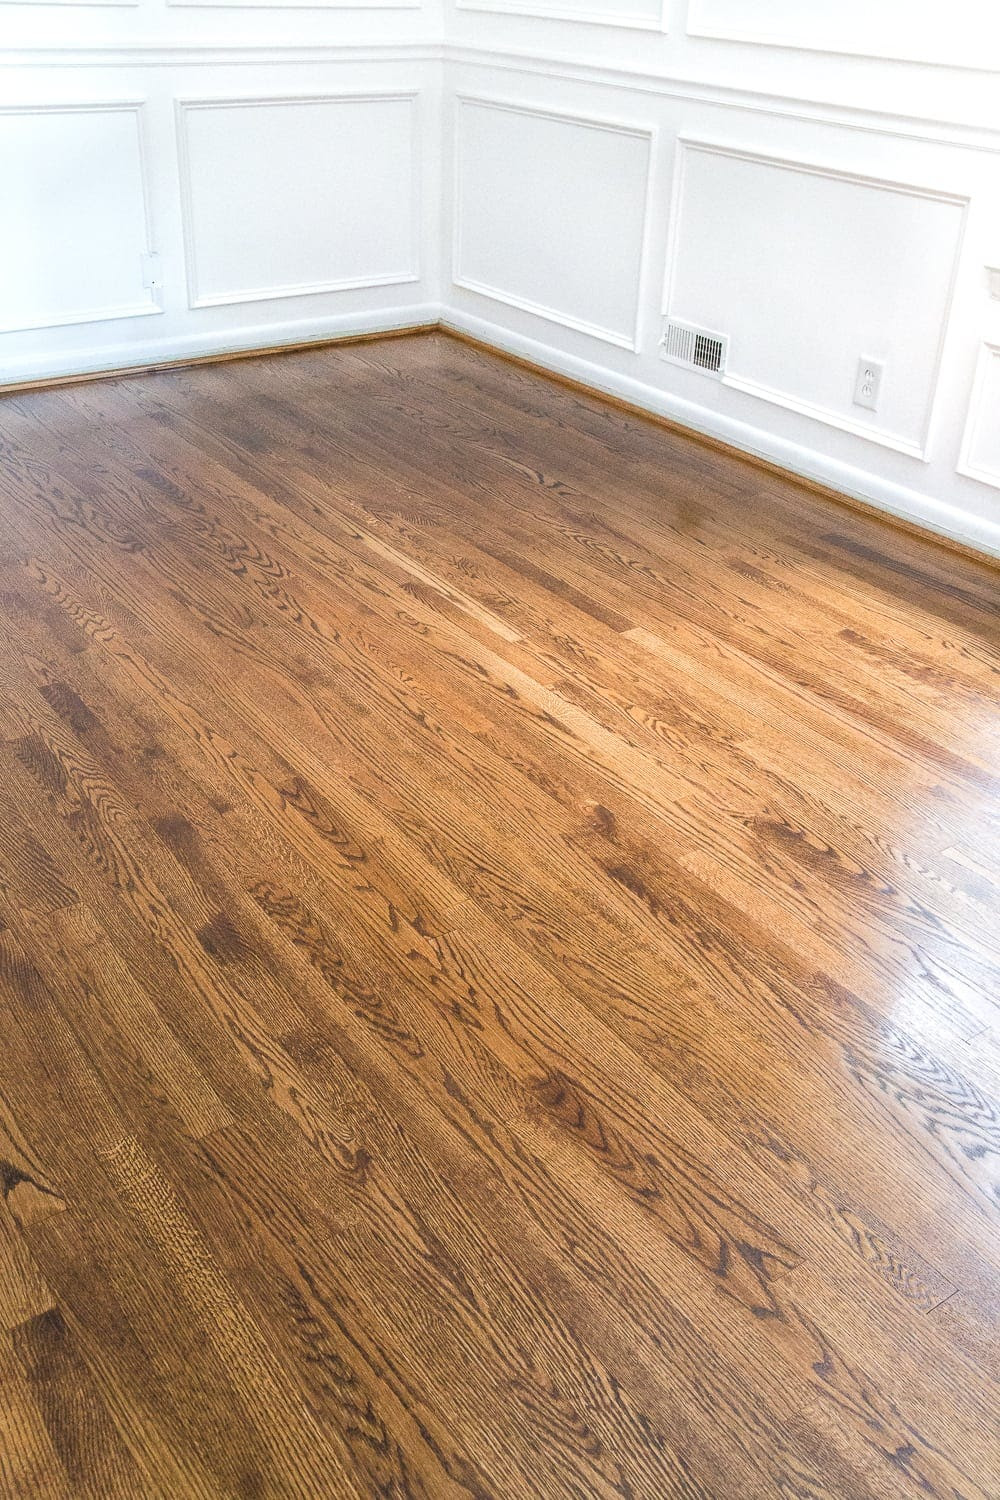 Minwax Provincial Stain hardwood floors sealed with satin polyurethane